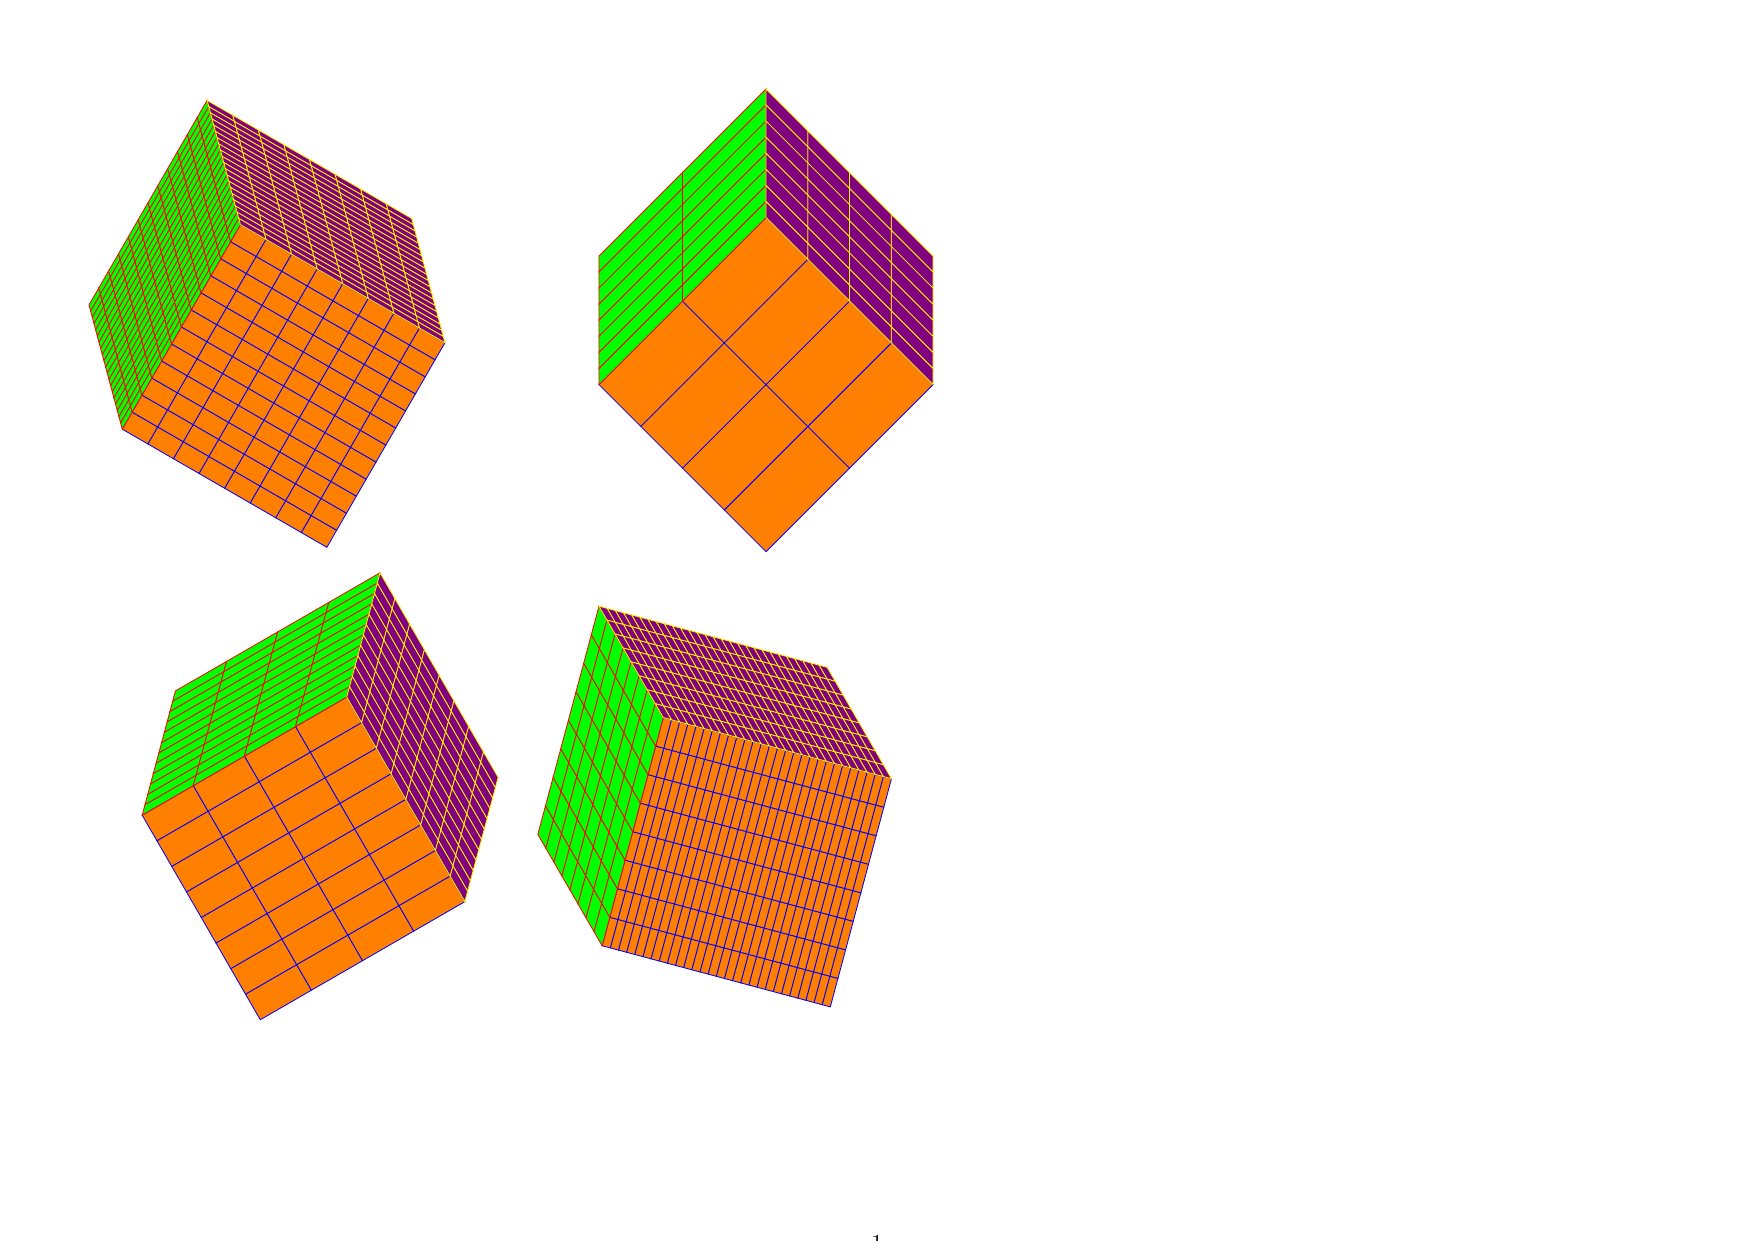 3d-cube_color_rotated+3d+pgf+foreach+command+define